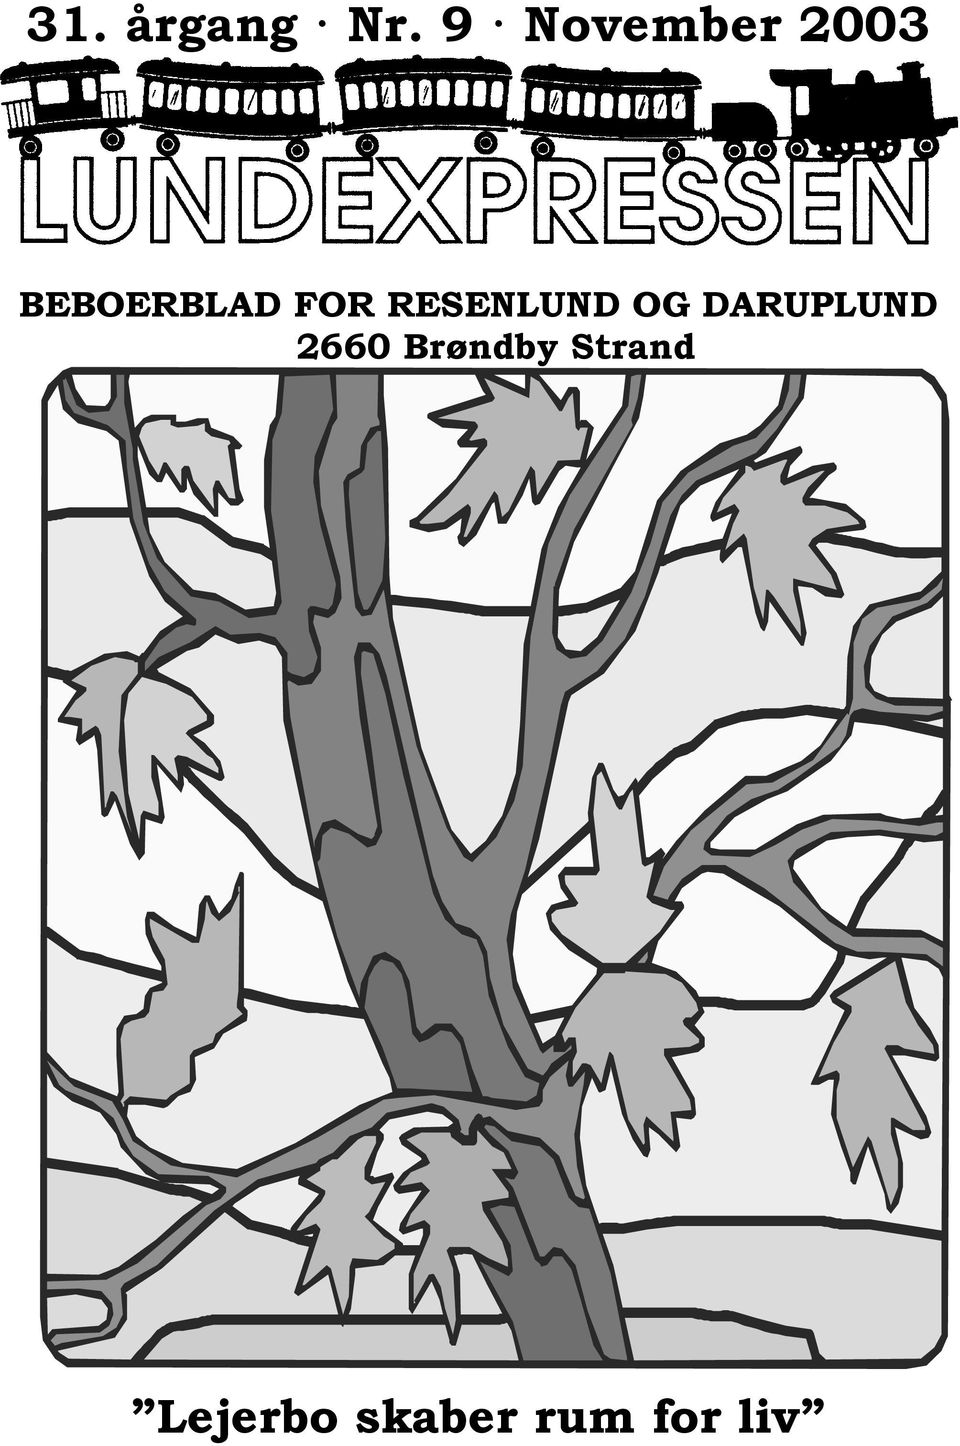 FOR RESENLUND OG DARUPLUND